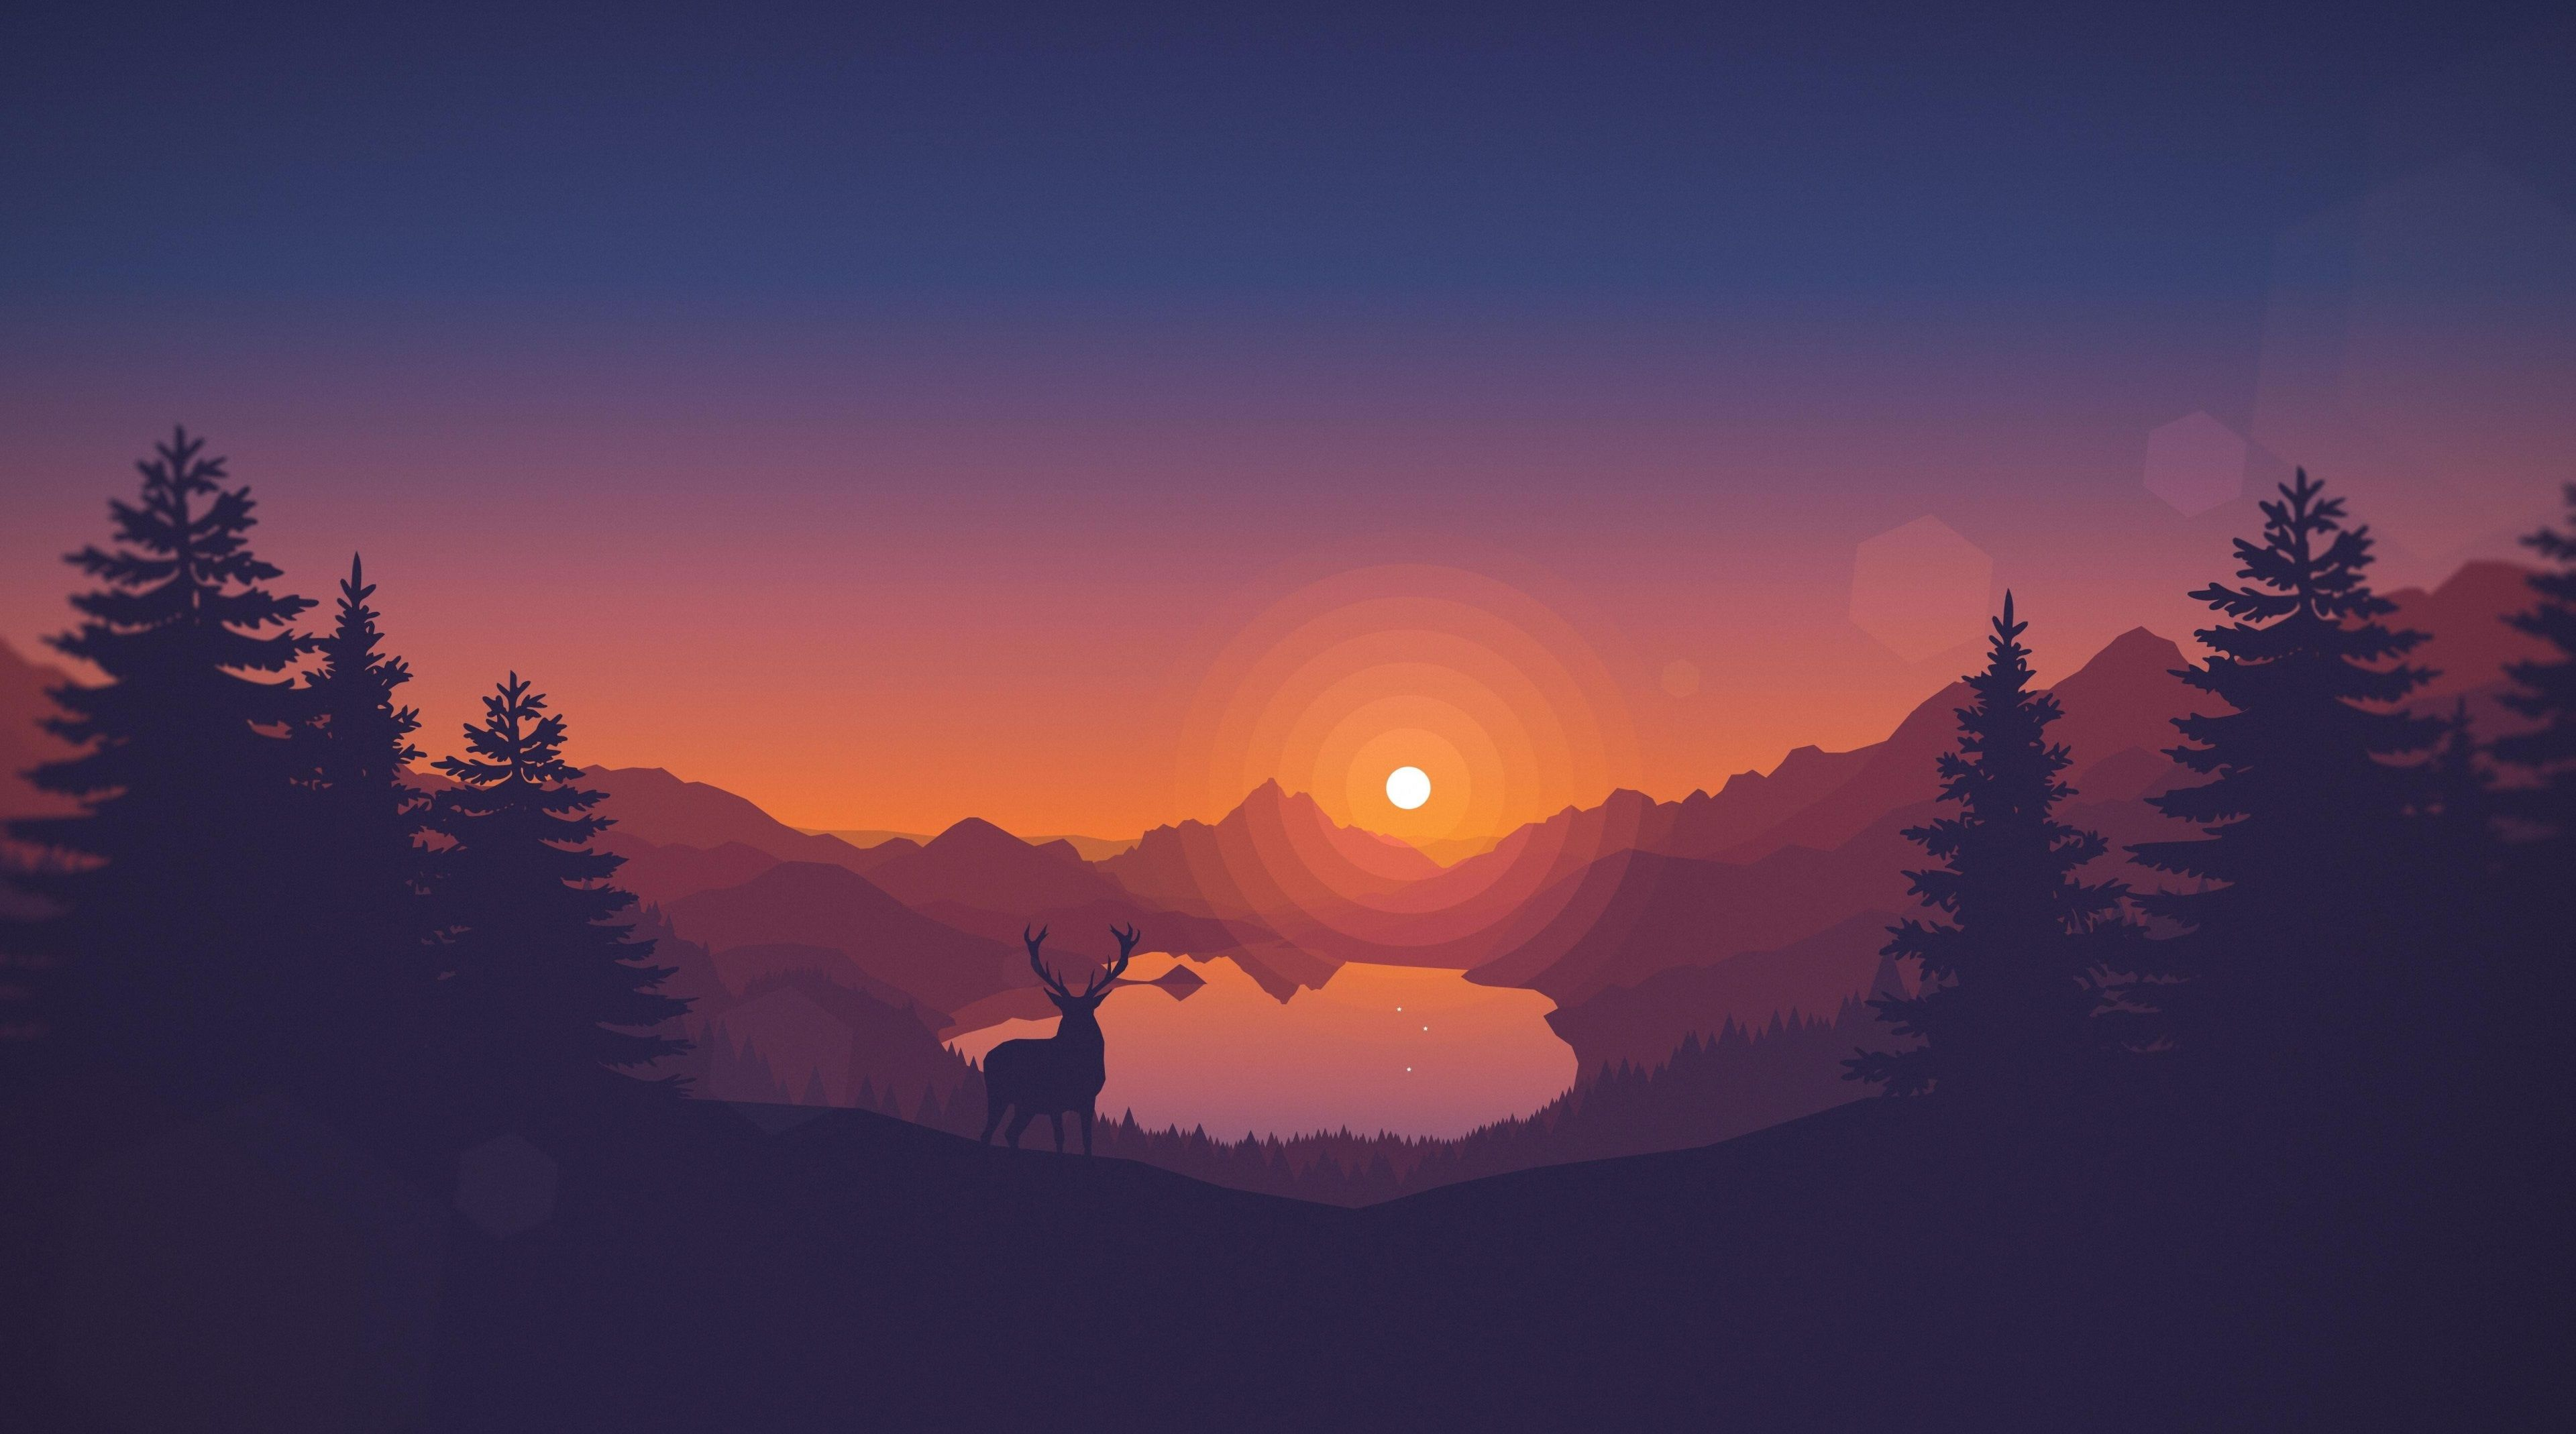 3840x2138 firewatch 4k desktop wallpaper cool Minimalist